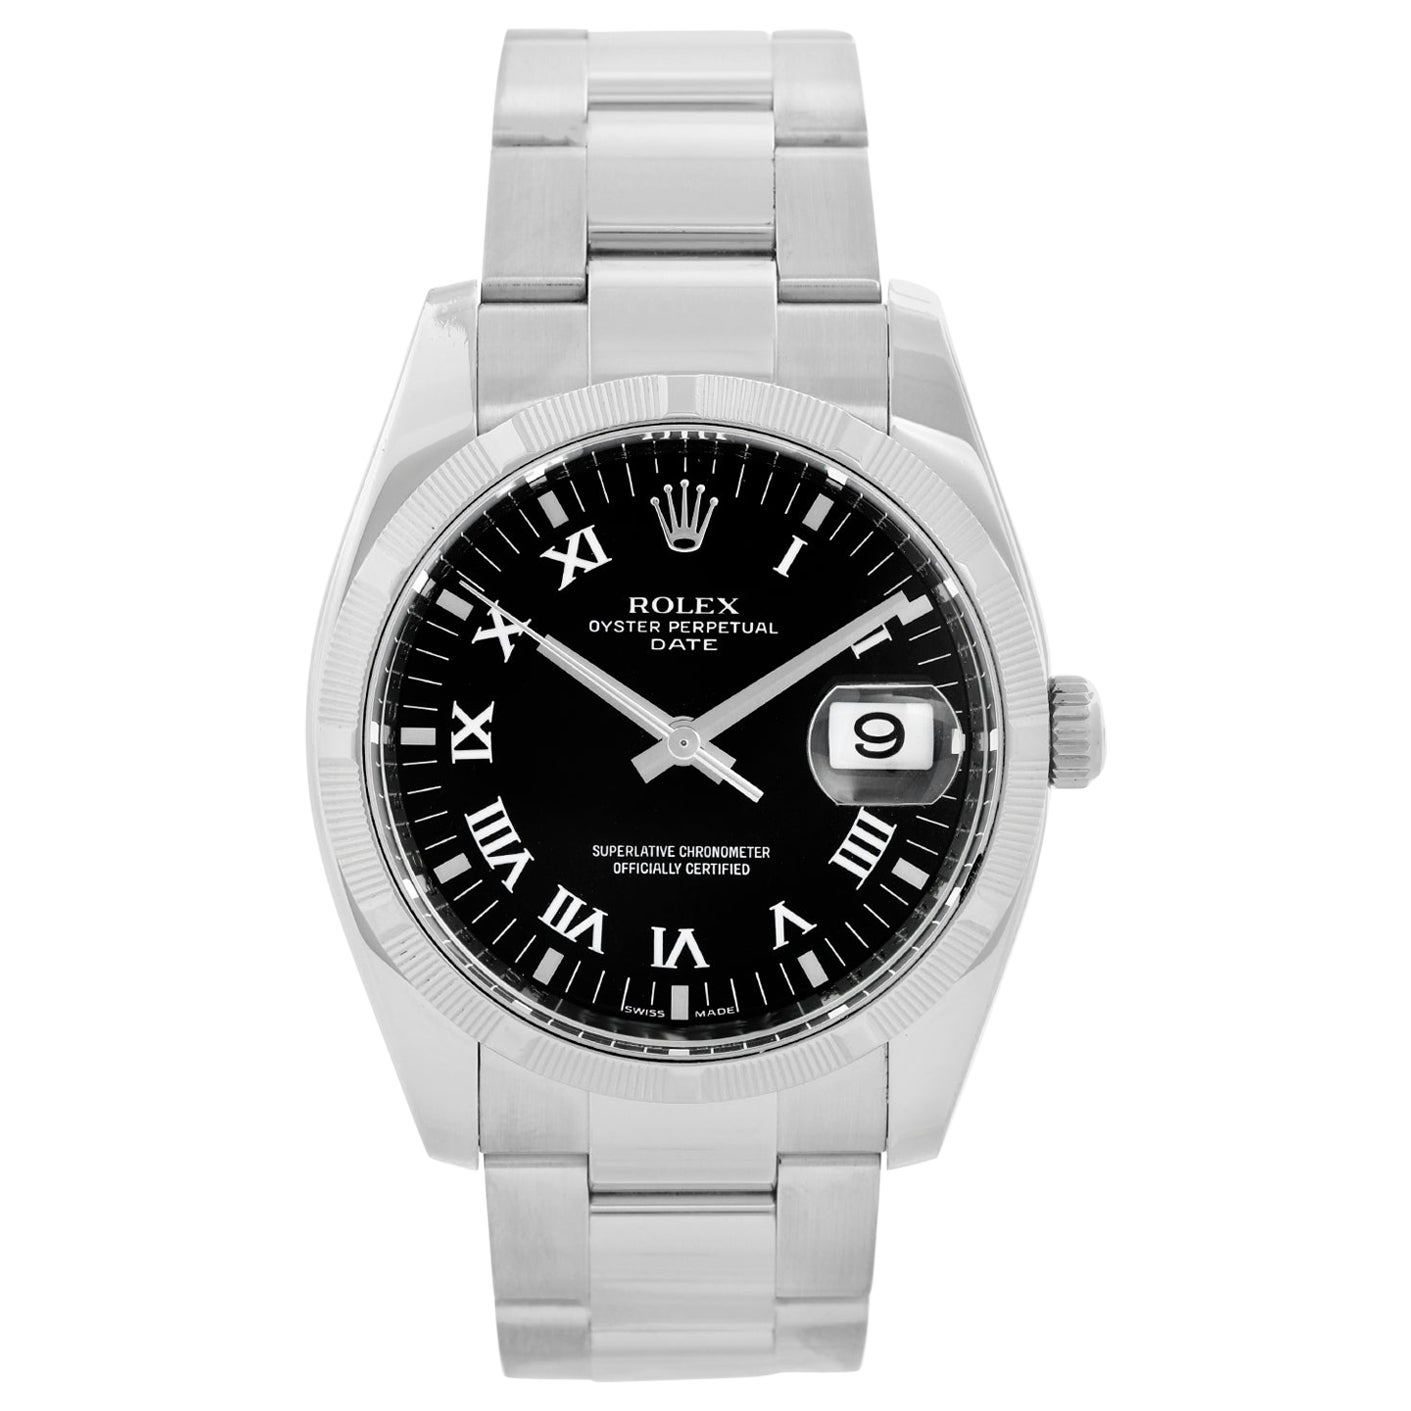 Rolex Oyster Perpetual Date Men's Stainless Steel Watch 115210